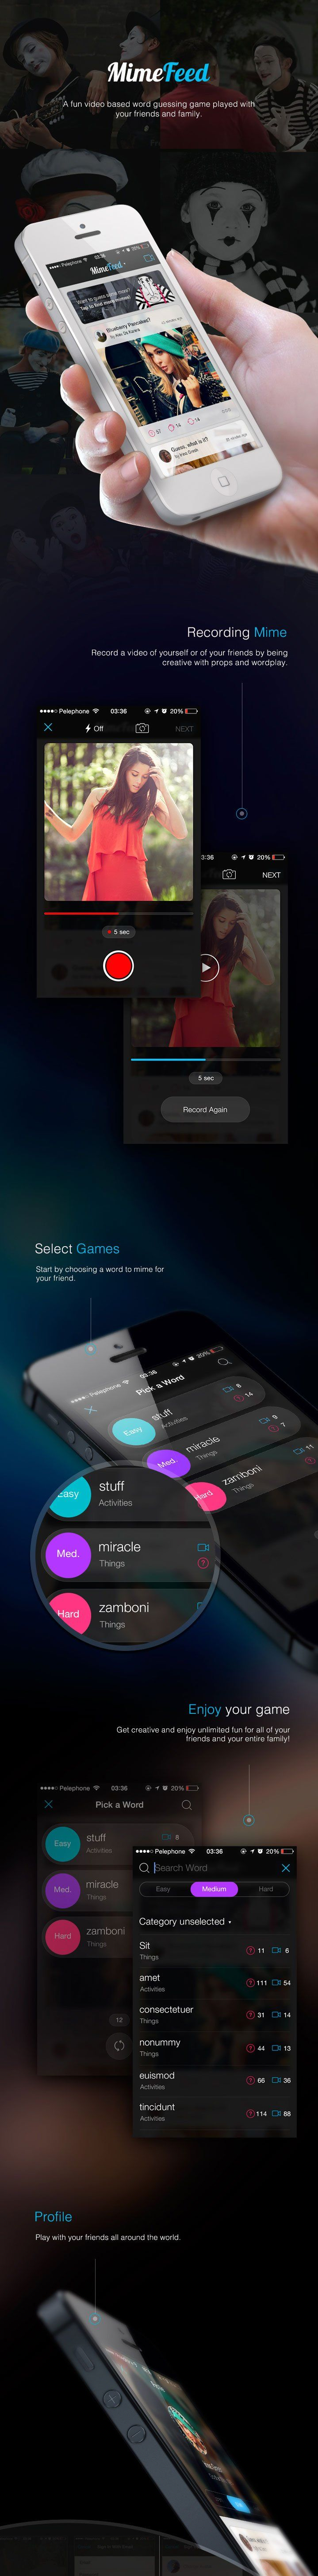 MimeFeed. Game App